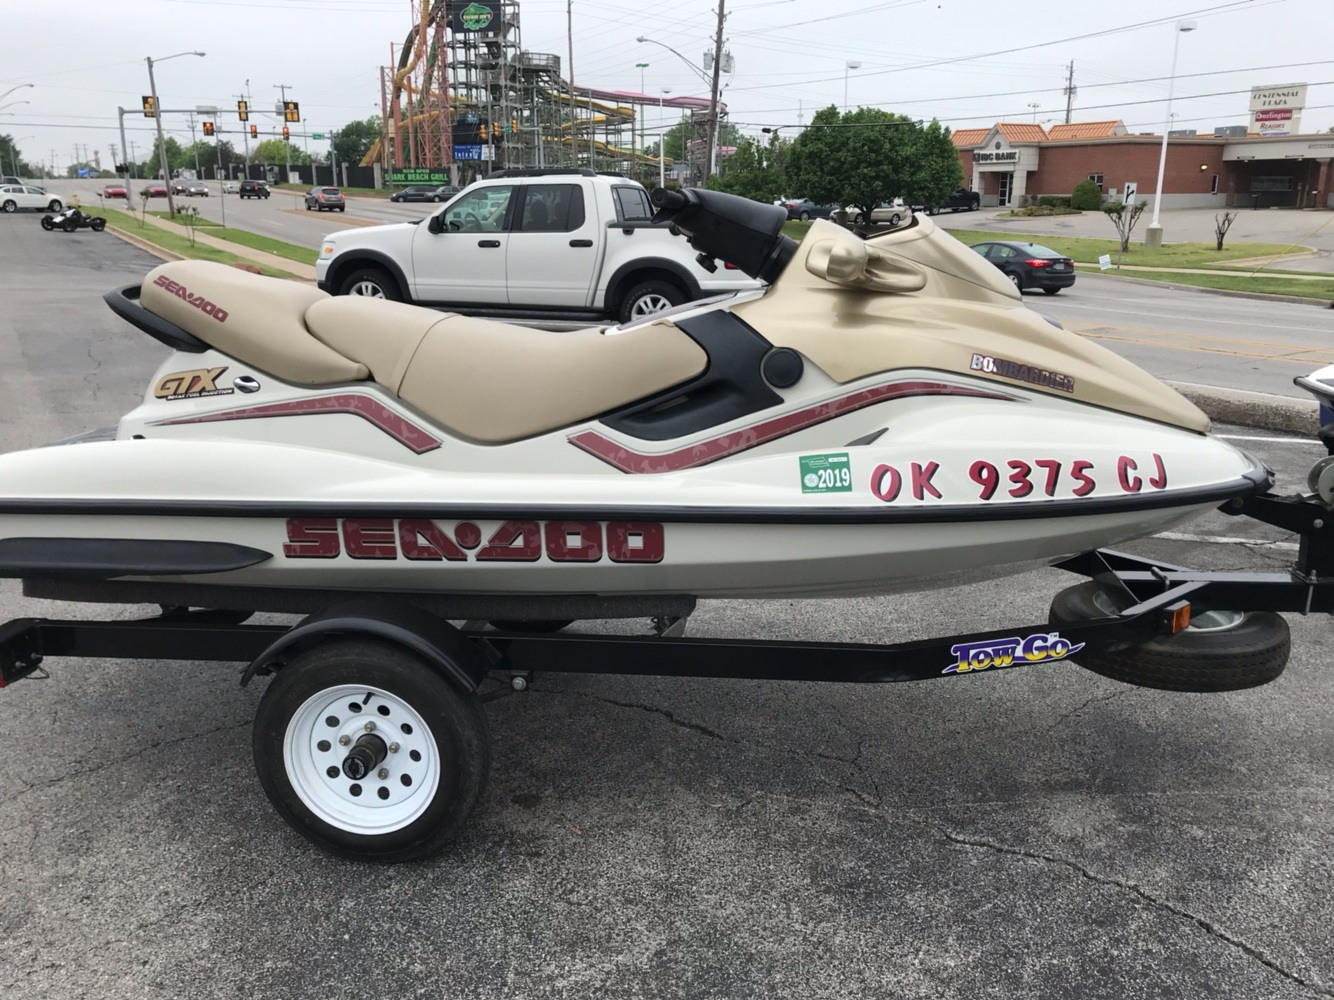 1999 Sea-Doo GTX RFI for sale 116884